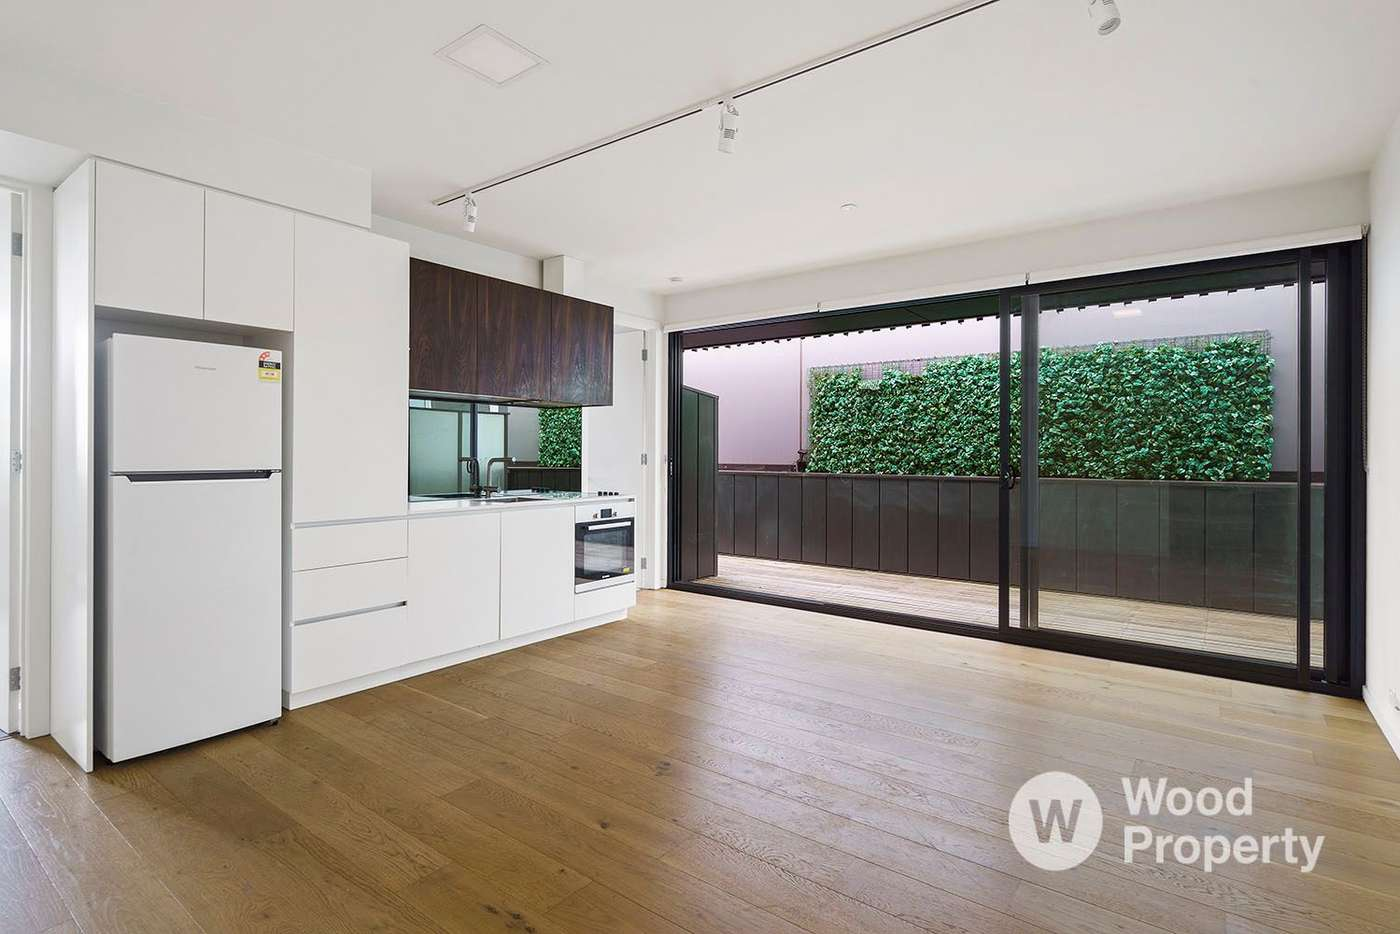 Main view of Homely apartment listing, 504/112 Ireland Street, West Melbourne VIC 3003